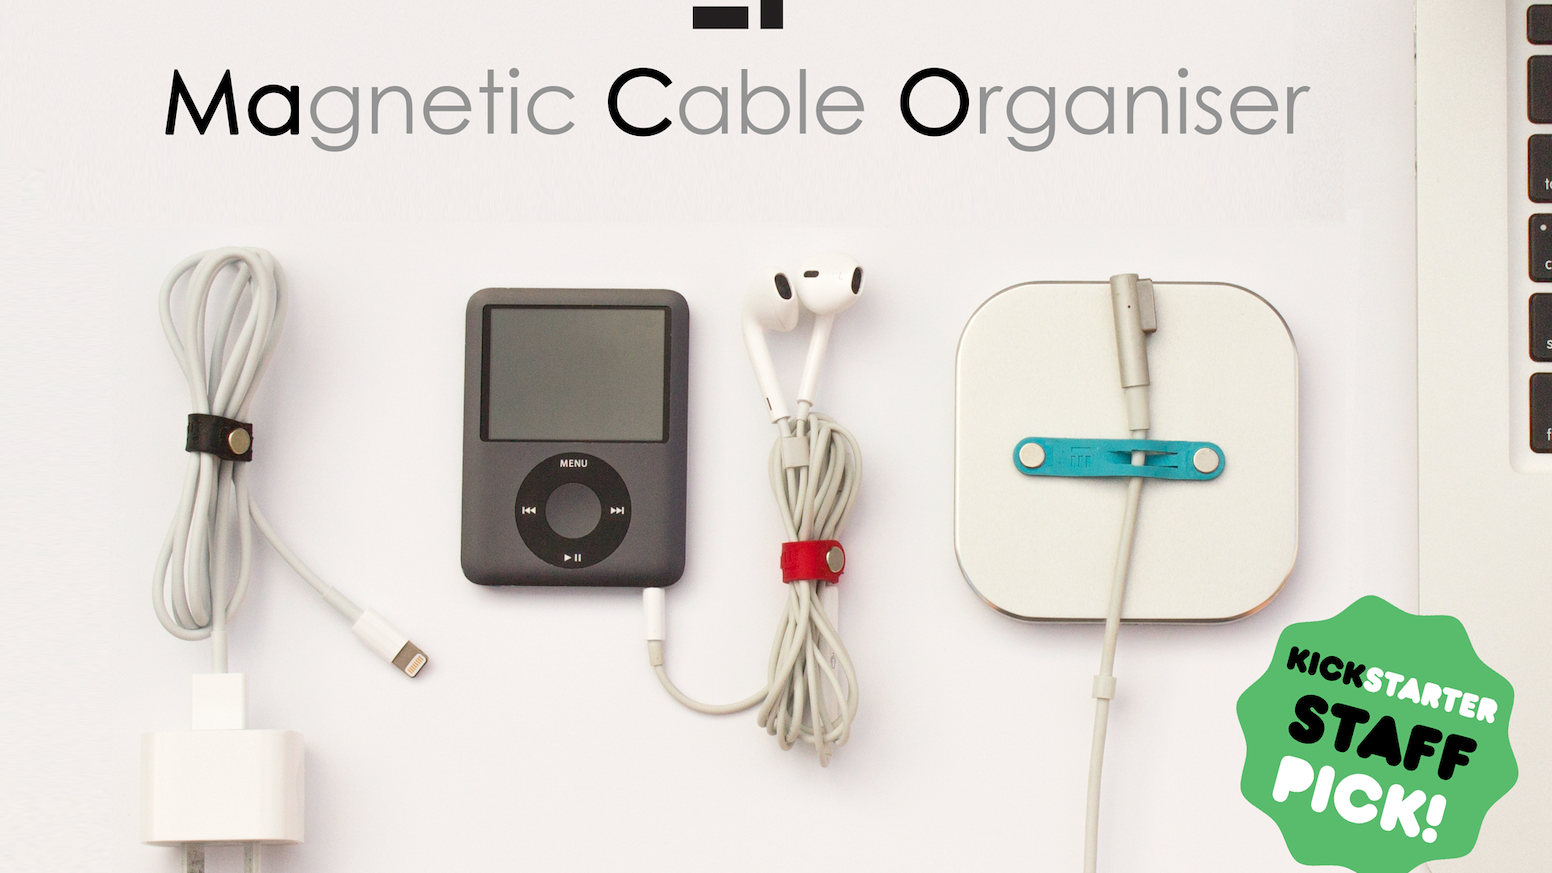 Keep your cables neat, organised and tangle-free. Attach MaCO to wall or on desk to keep cords from falling.